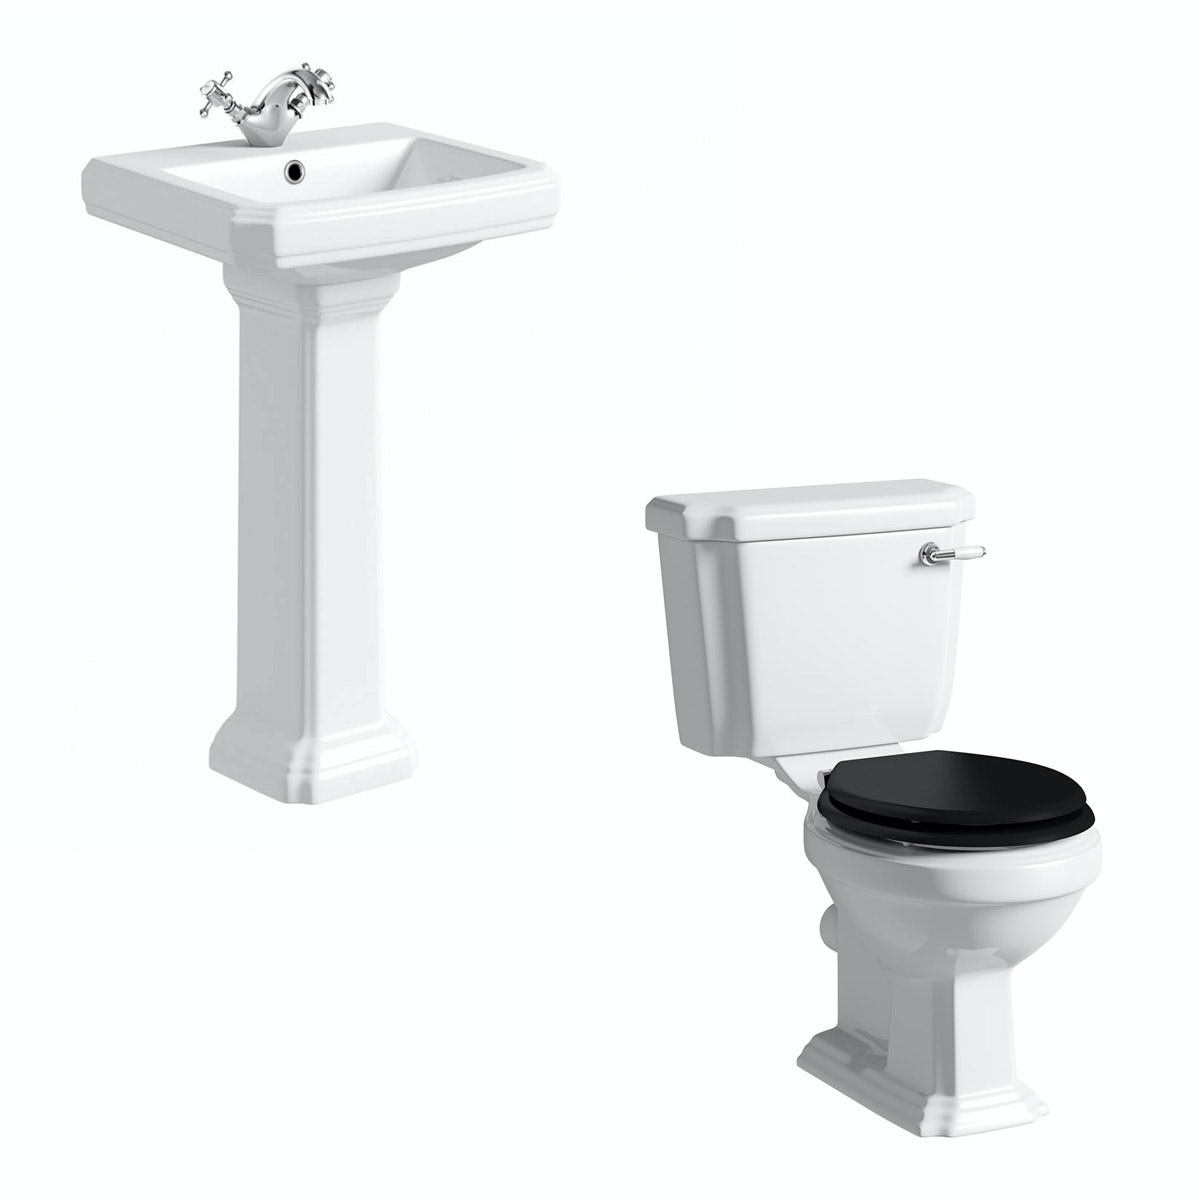 The Bath Co. Dulwich cloakroom suite with black seat and full pedestal basin 500mm